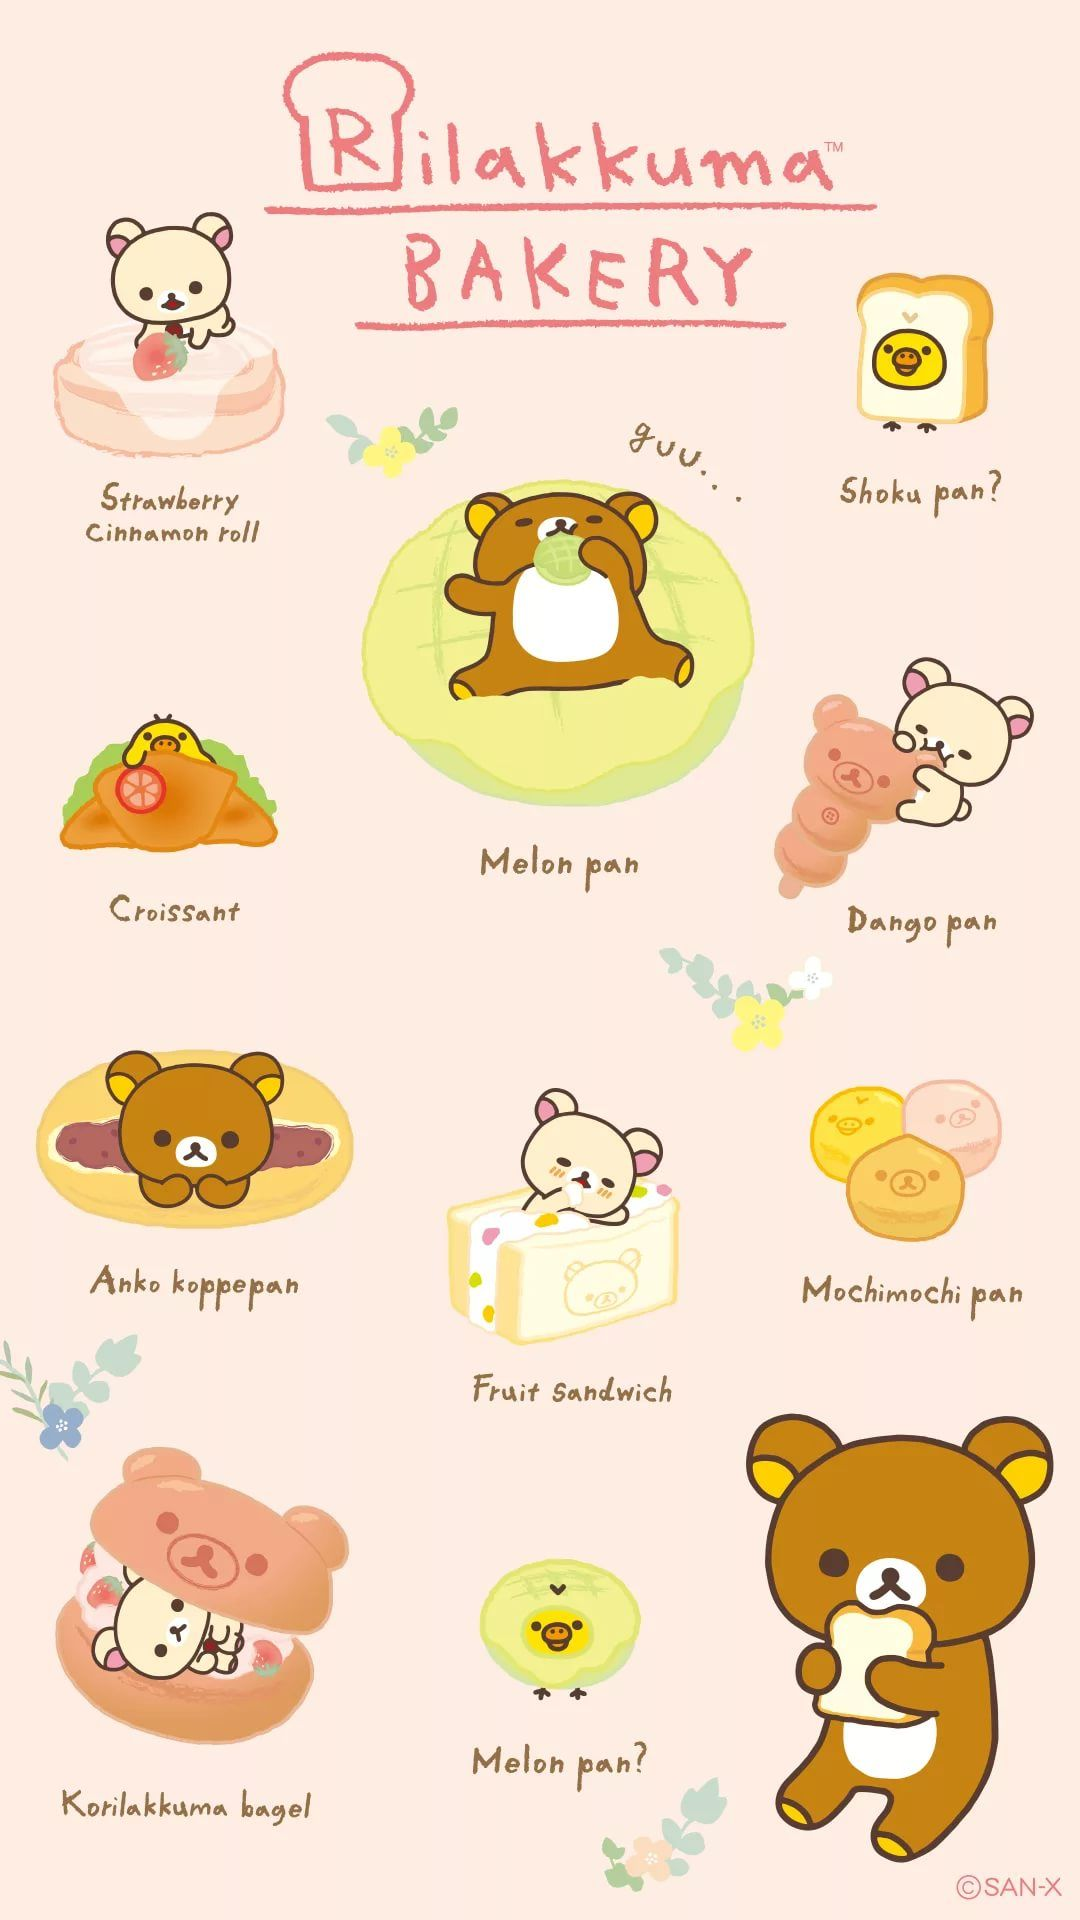 Rilakkuma iPhone hd wallpaper